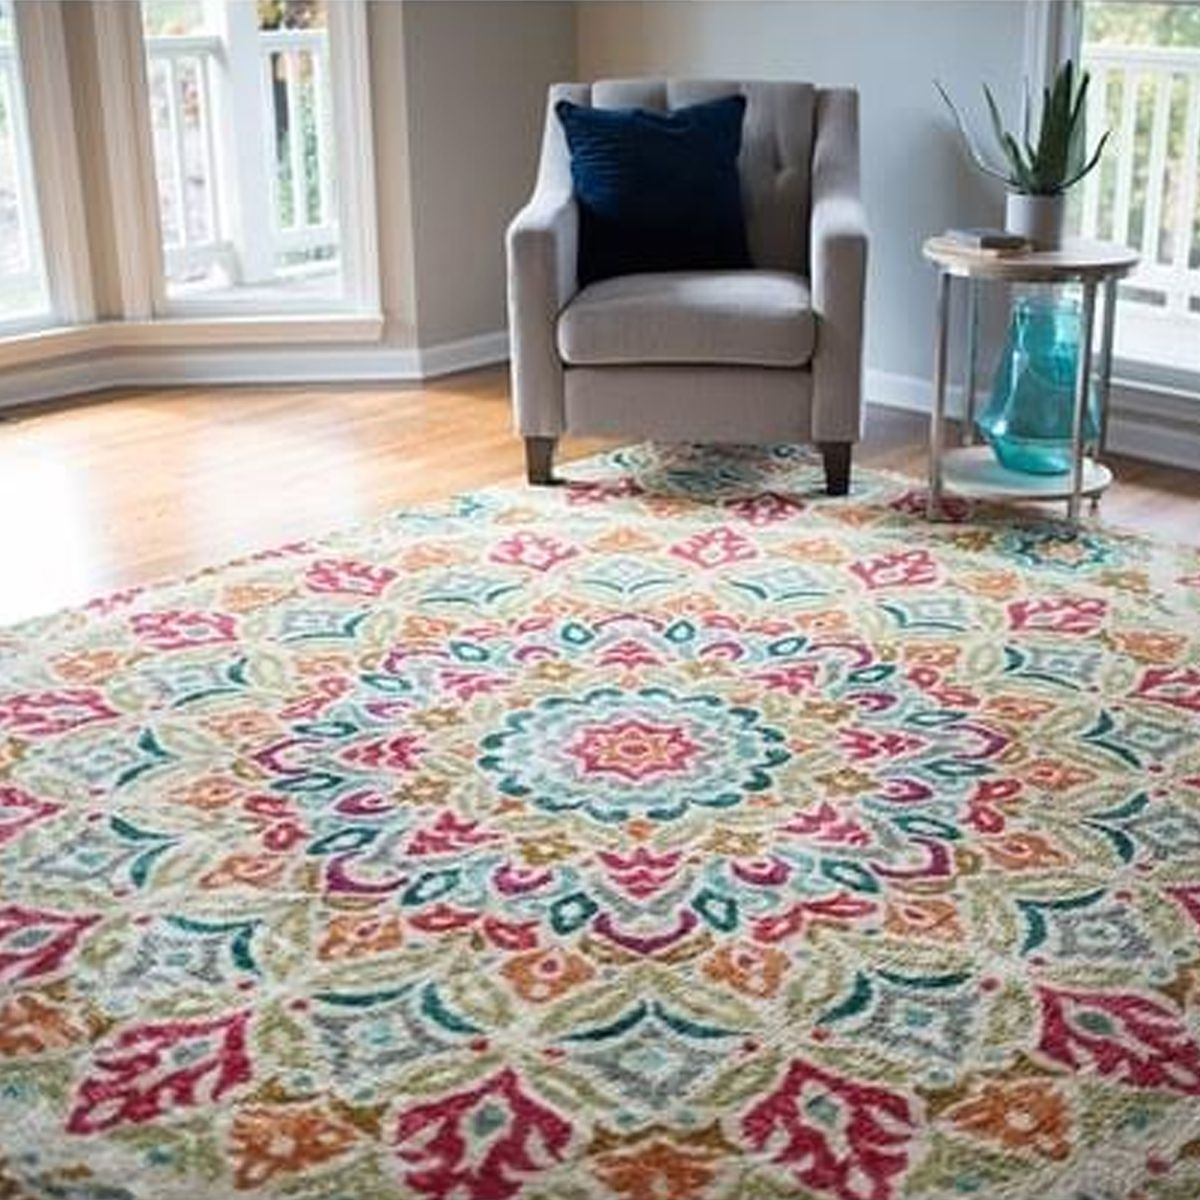 Mohawk Home Traditional Jewel Rug: Bright & Bold Rugs For A Stylish Space